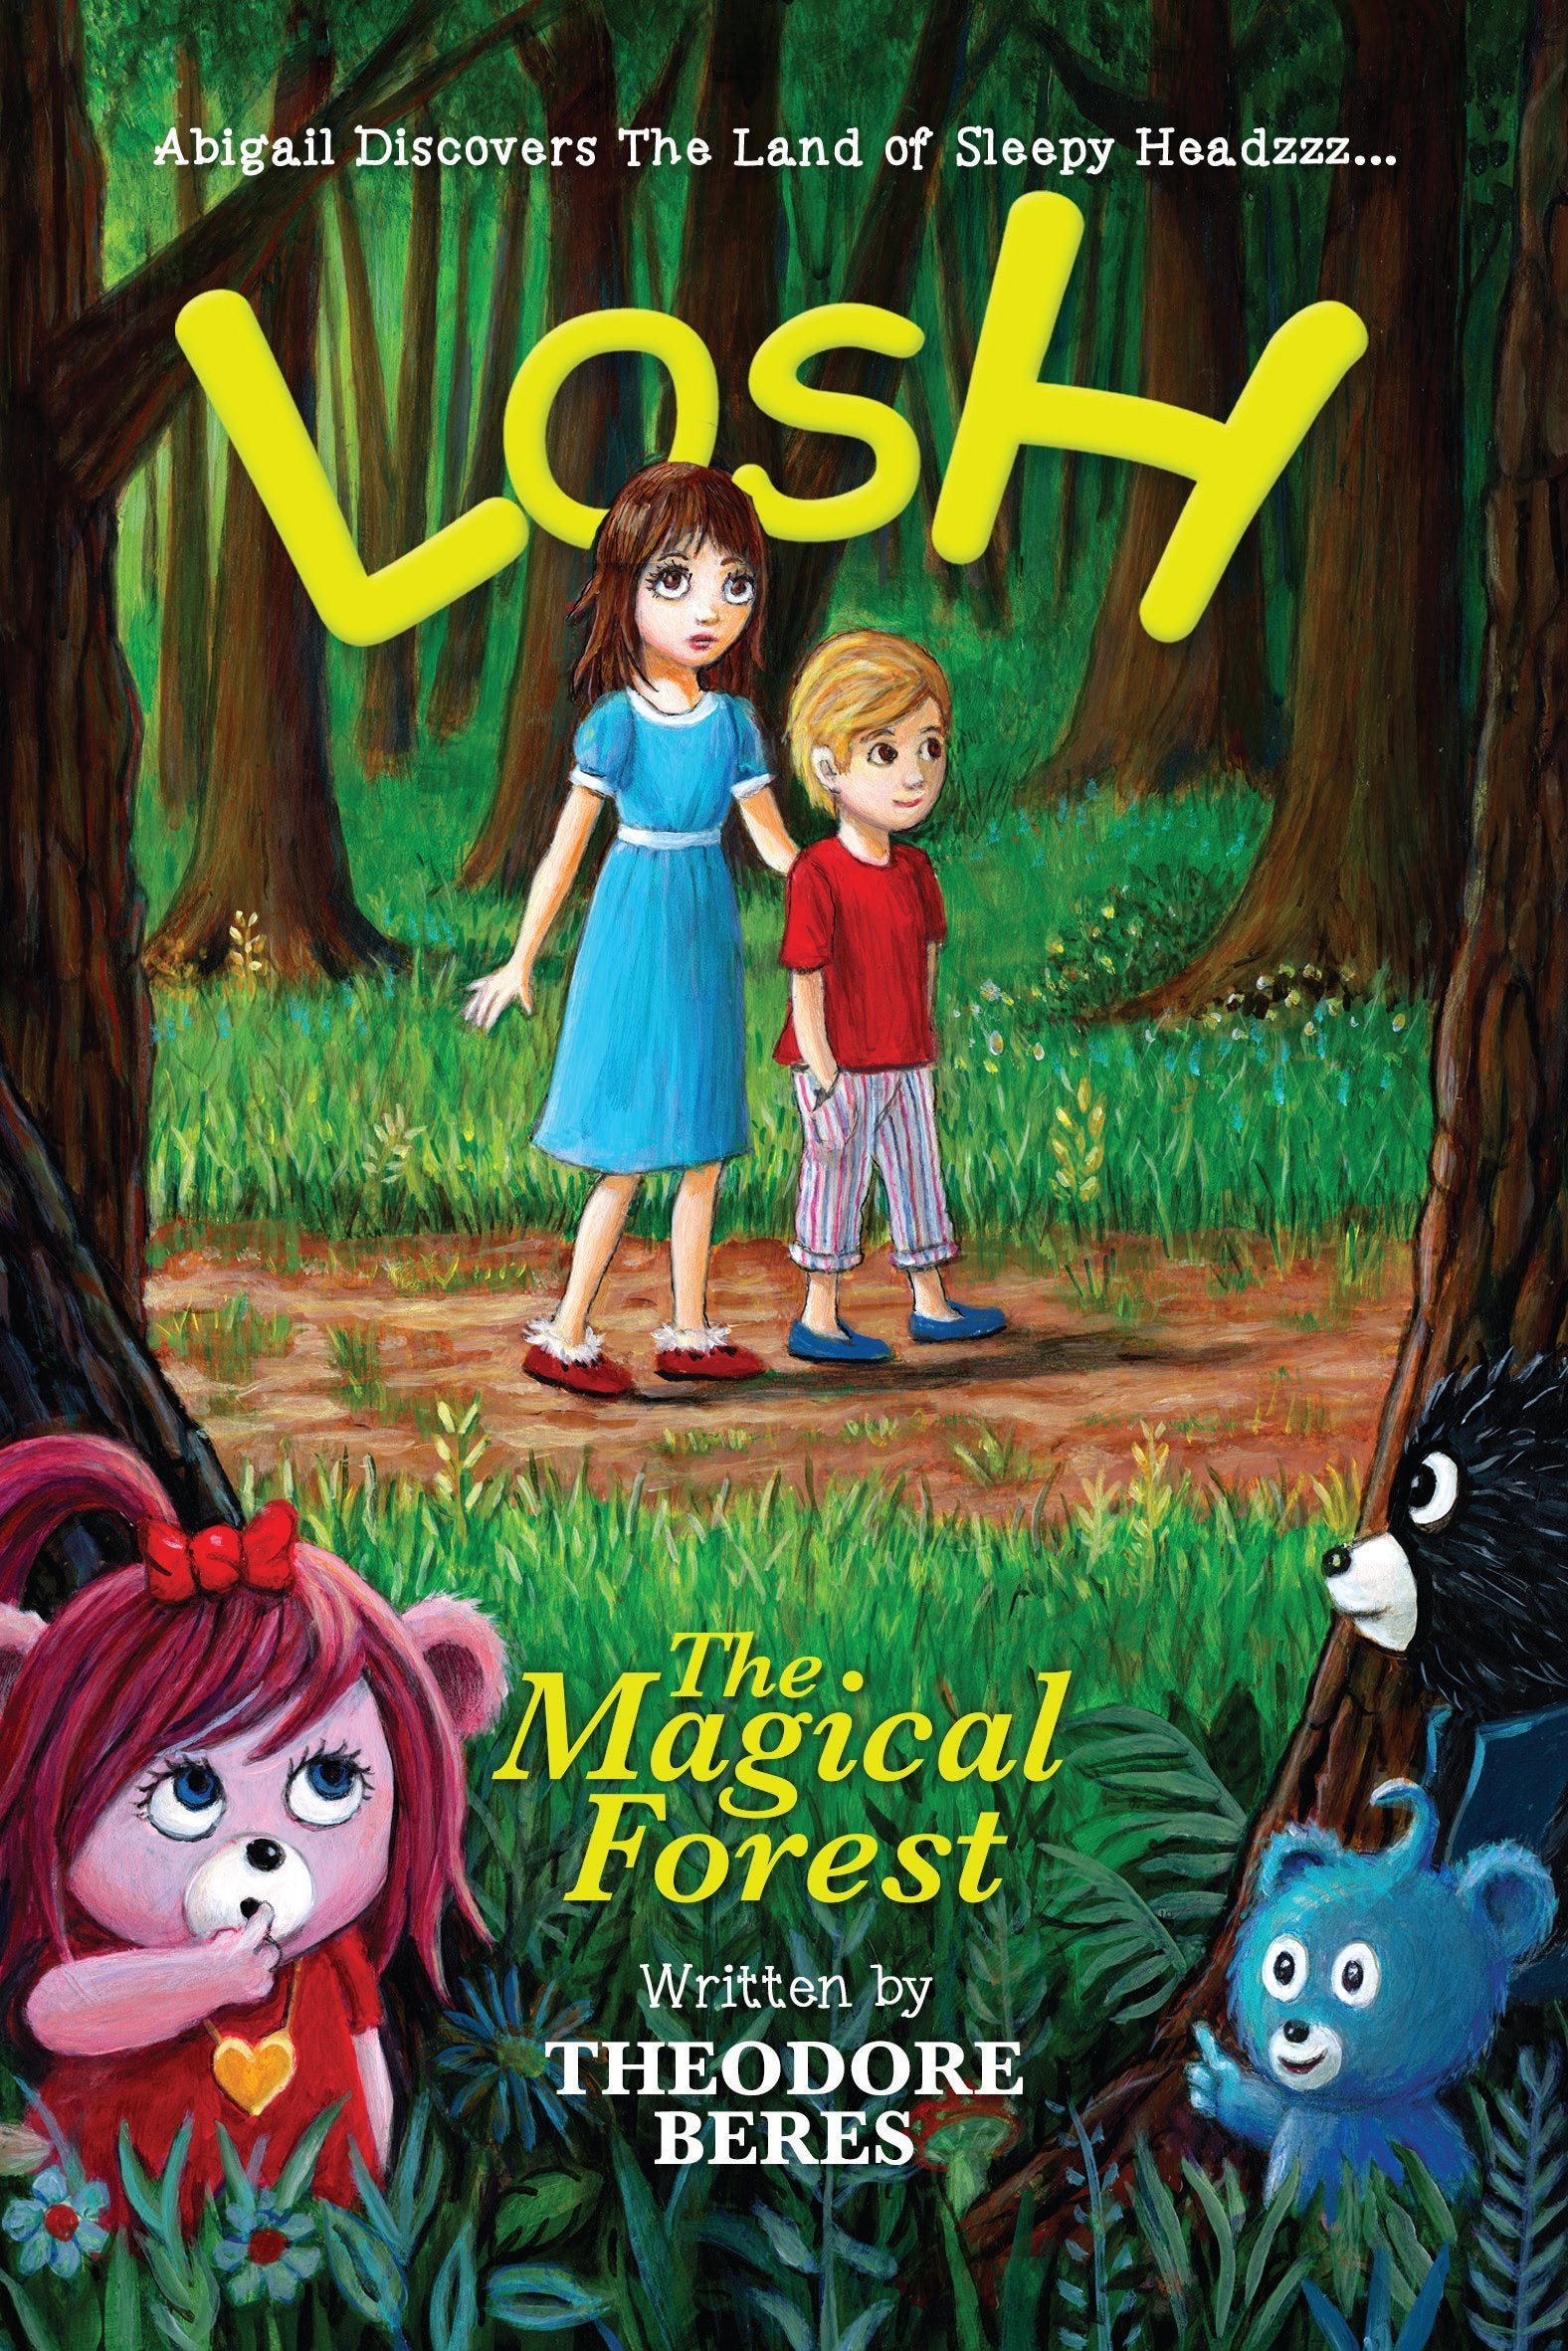 1.  LOSH:  Abigail Discovers The Land Of Sleepy Headzzz… The Magical Forest